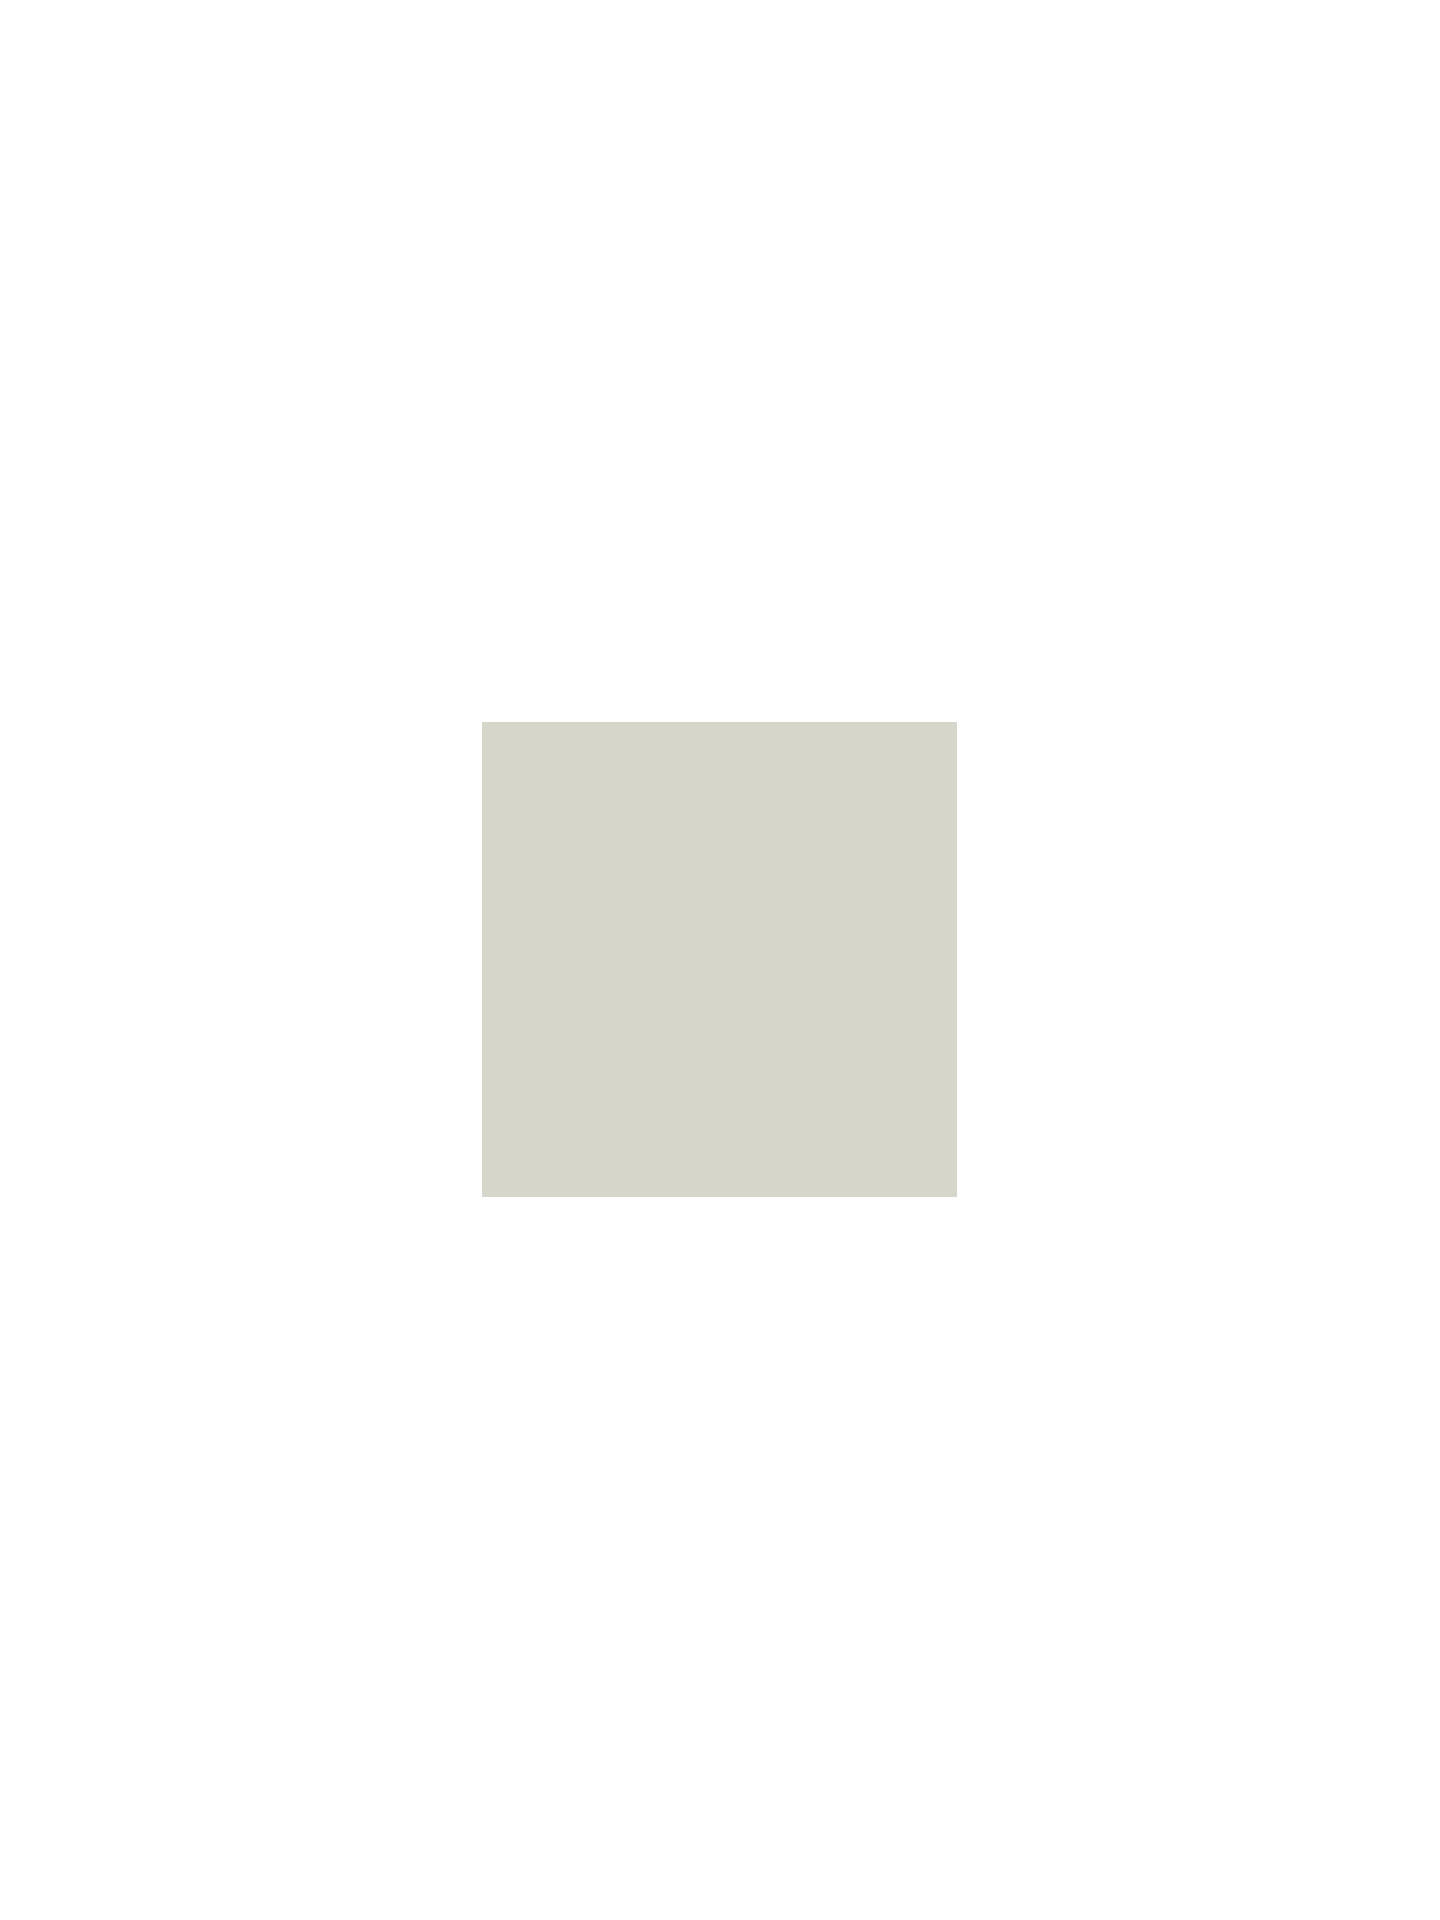 BuyLittle Greene Paint Co. Absolute Matt Emulsion Taupes Tester Pot, French Grey Mid (162) Online at johnlewis.com